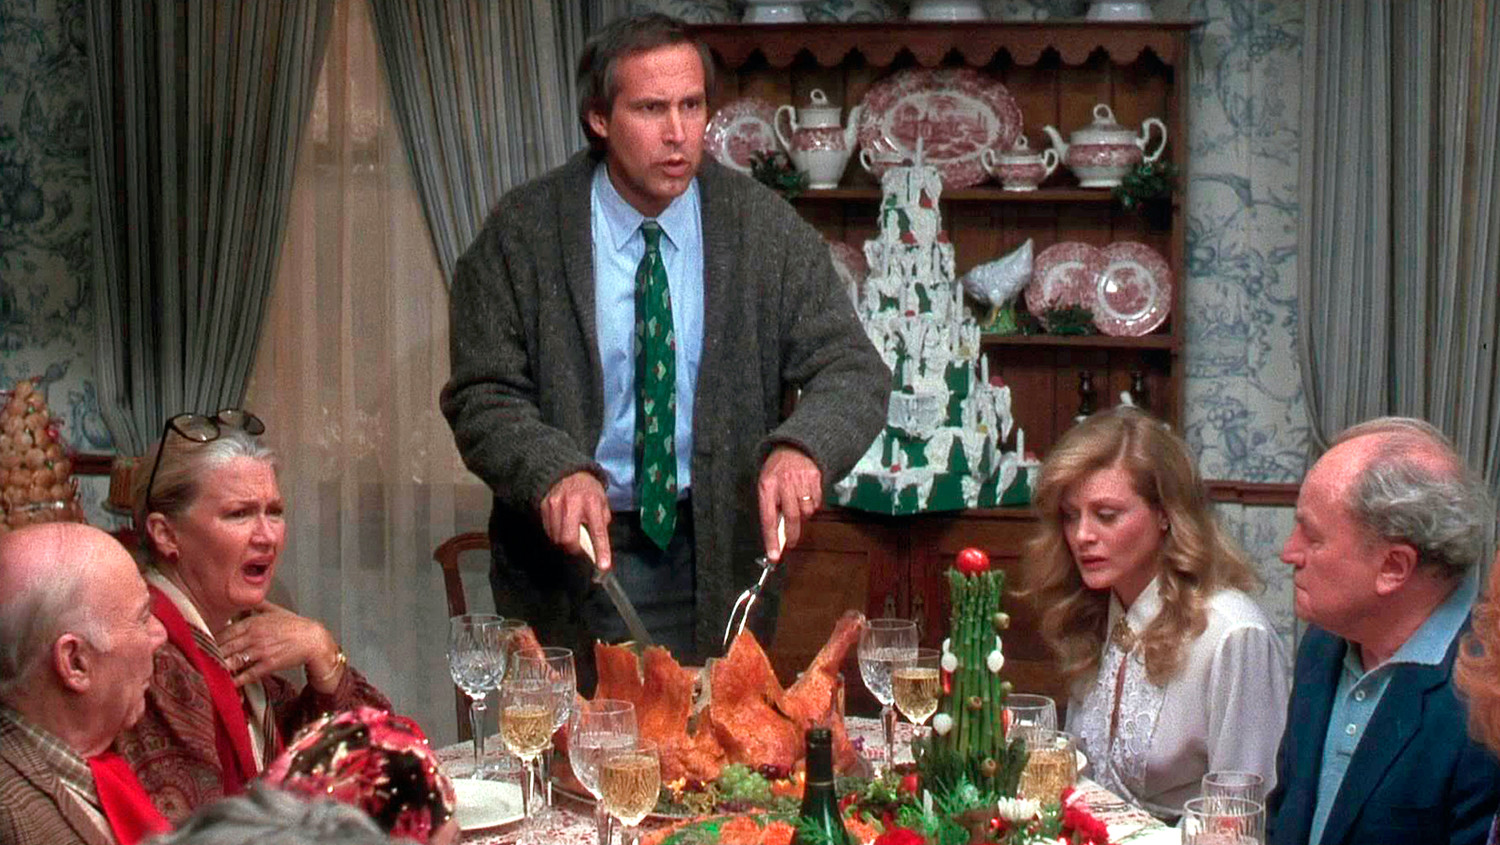 national lampoons christmas vacation chevy chasecredit photo warner broscourtesy neal peters collection - National Lampoons Christmas Vacation Pictures